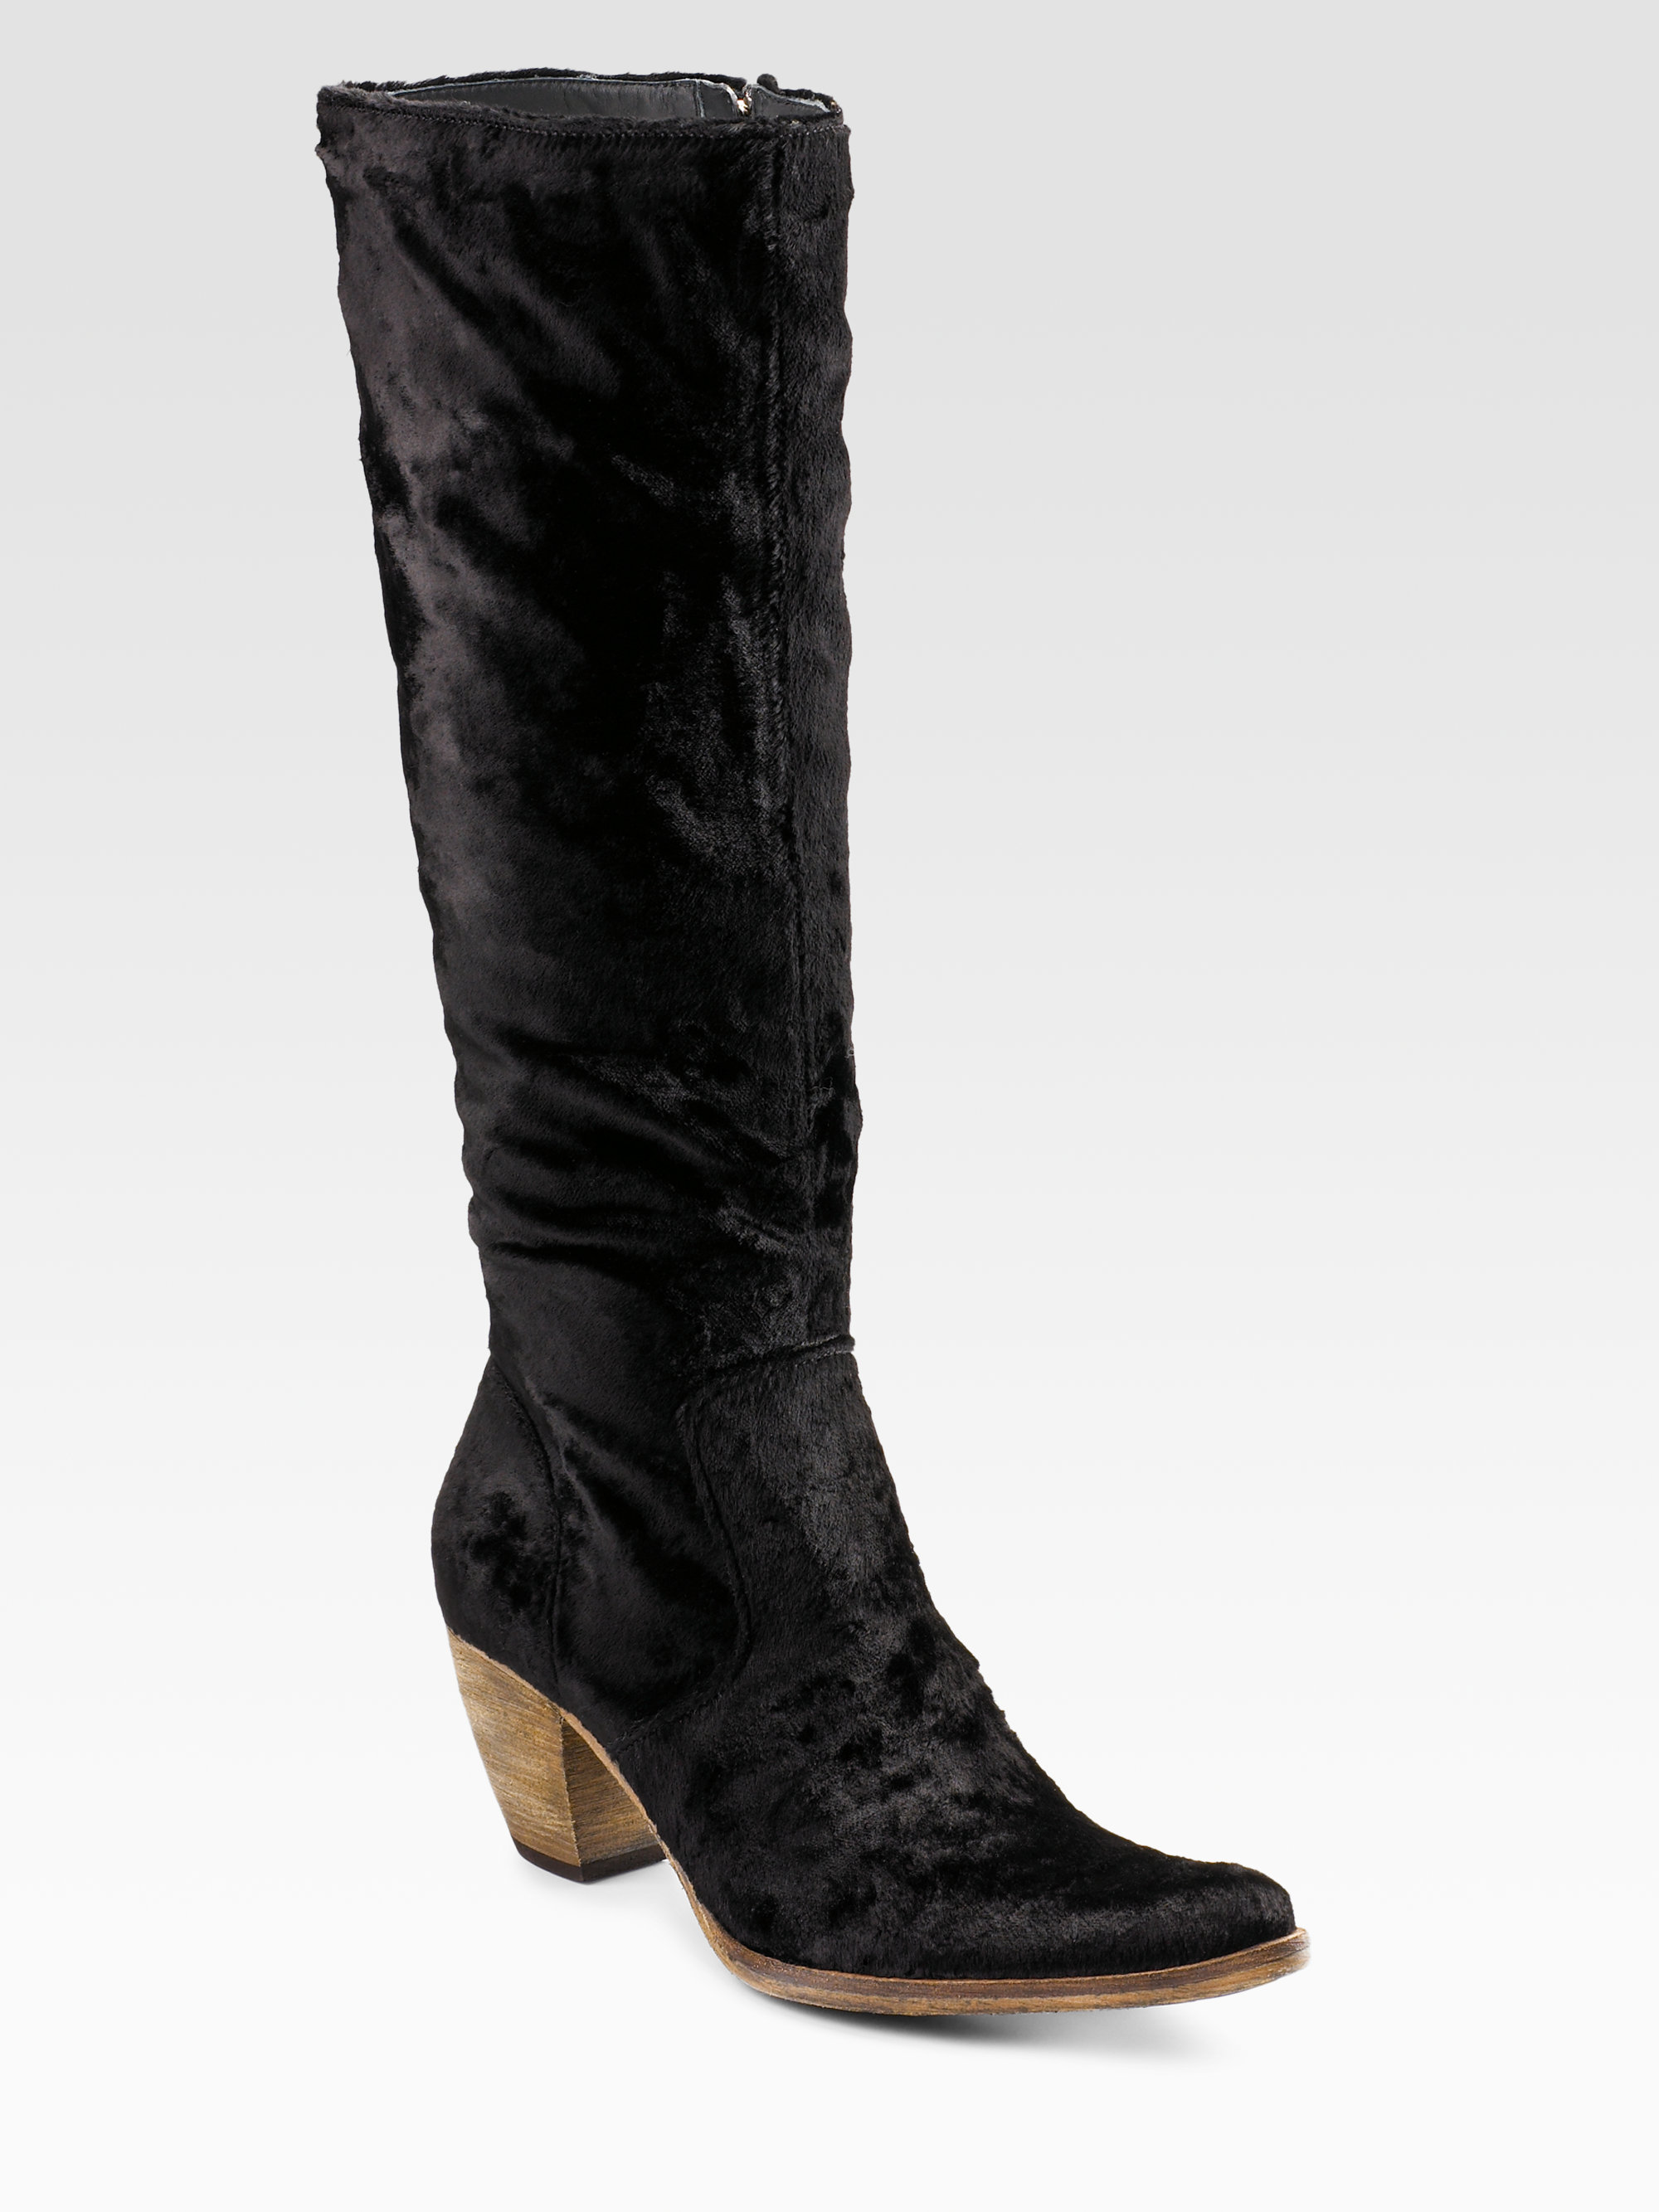 Elizabeth and James Mid-Calf Platform Boots Inexpensive sale online TaT59gyt2